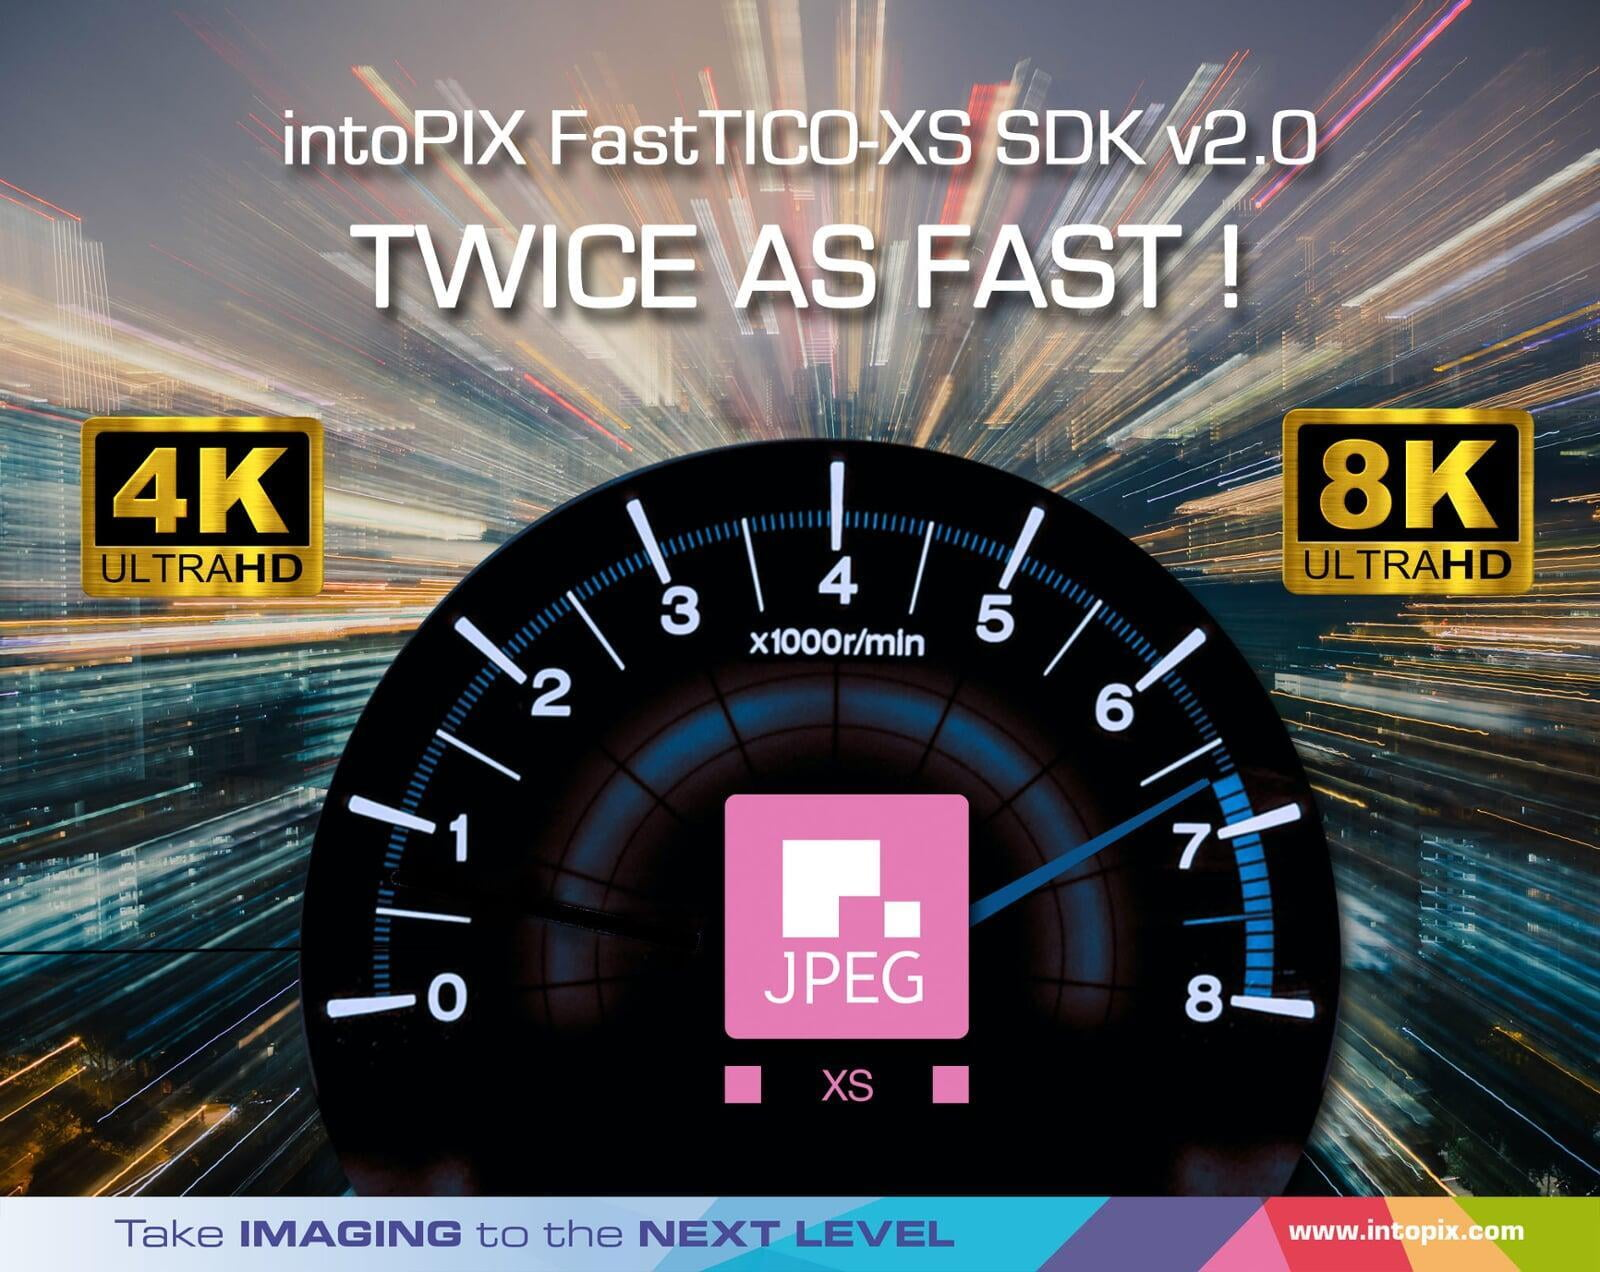 intoPIX Ships v2.0 of FastTICO-XS SDK for x86-64 CPU platforms